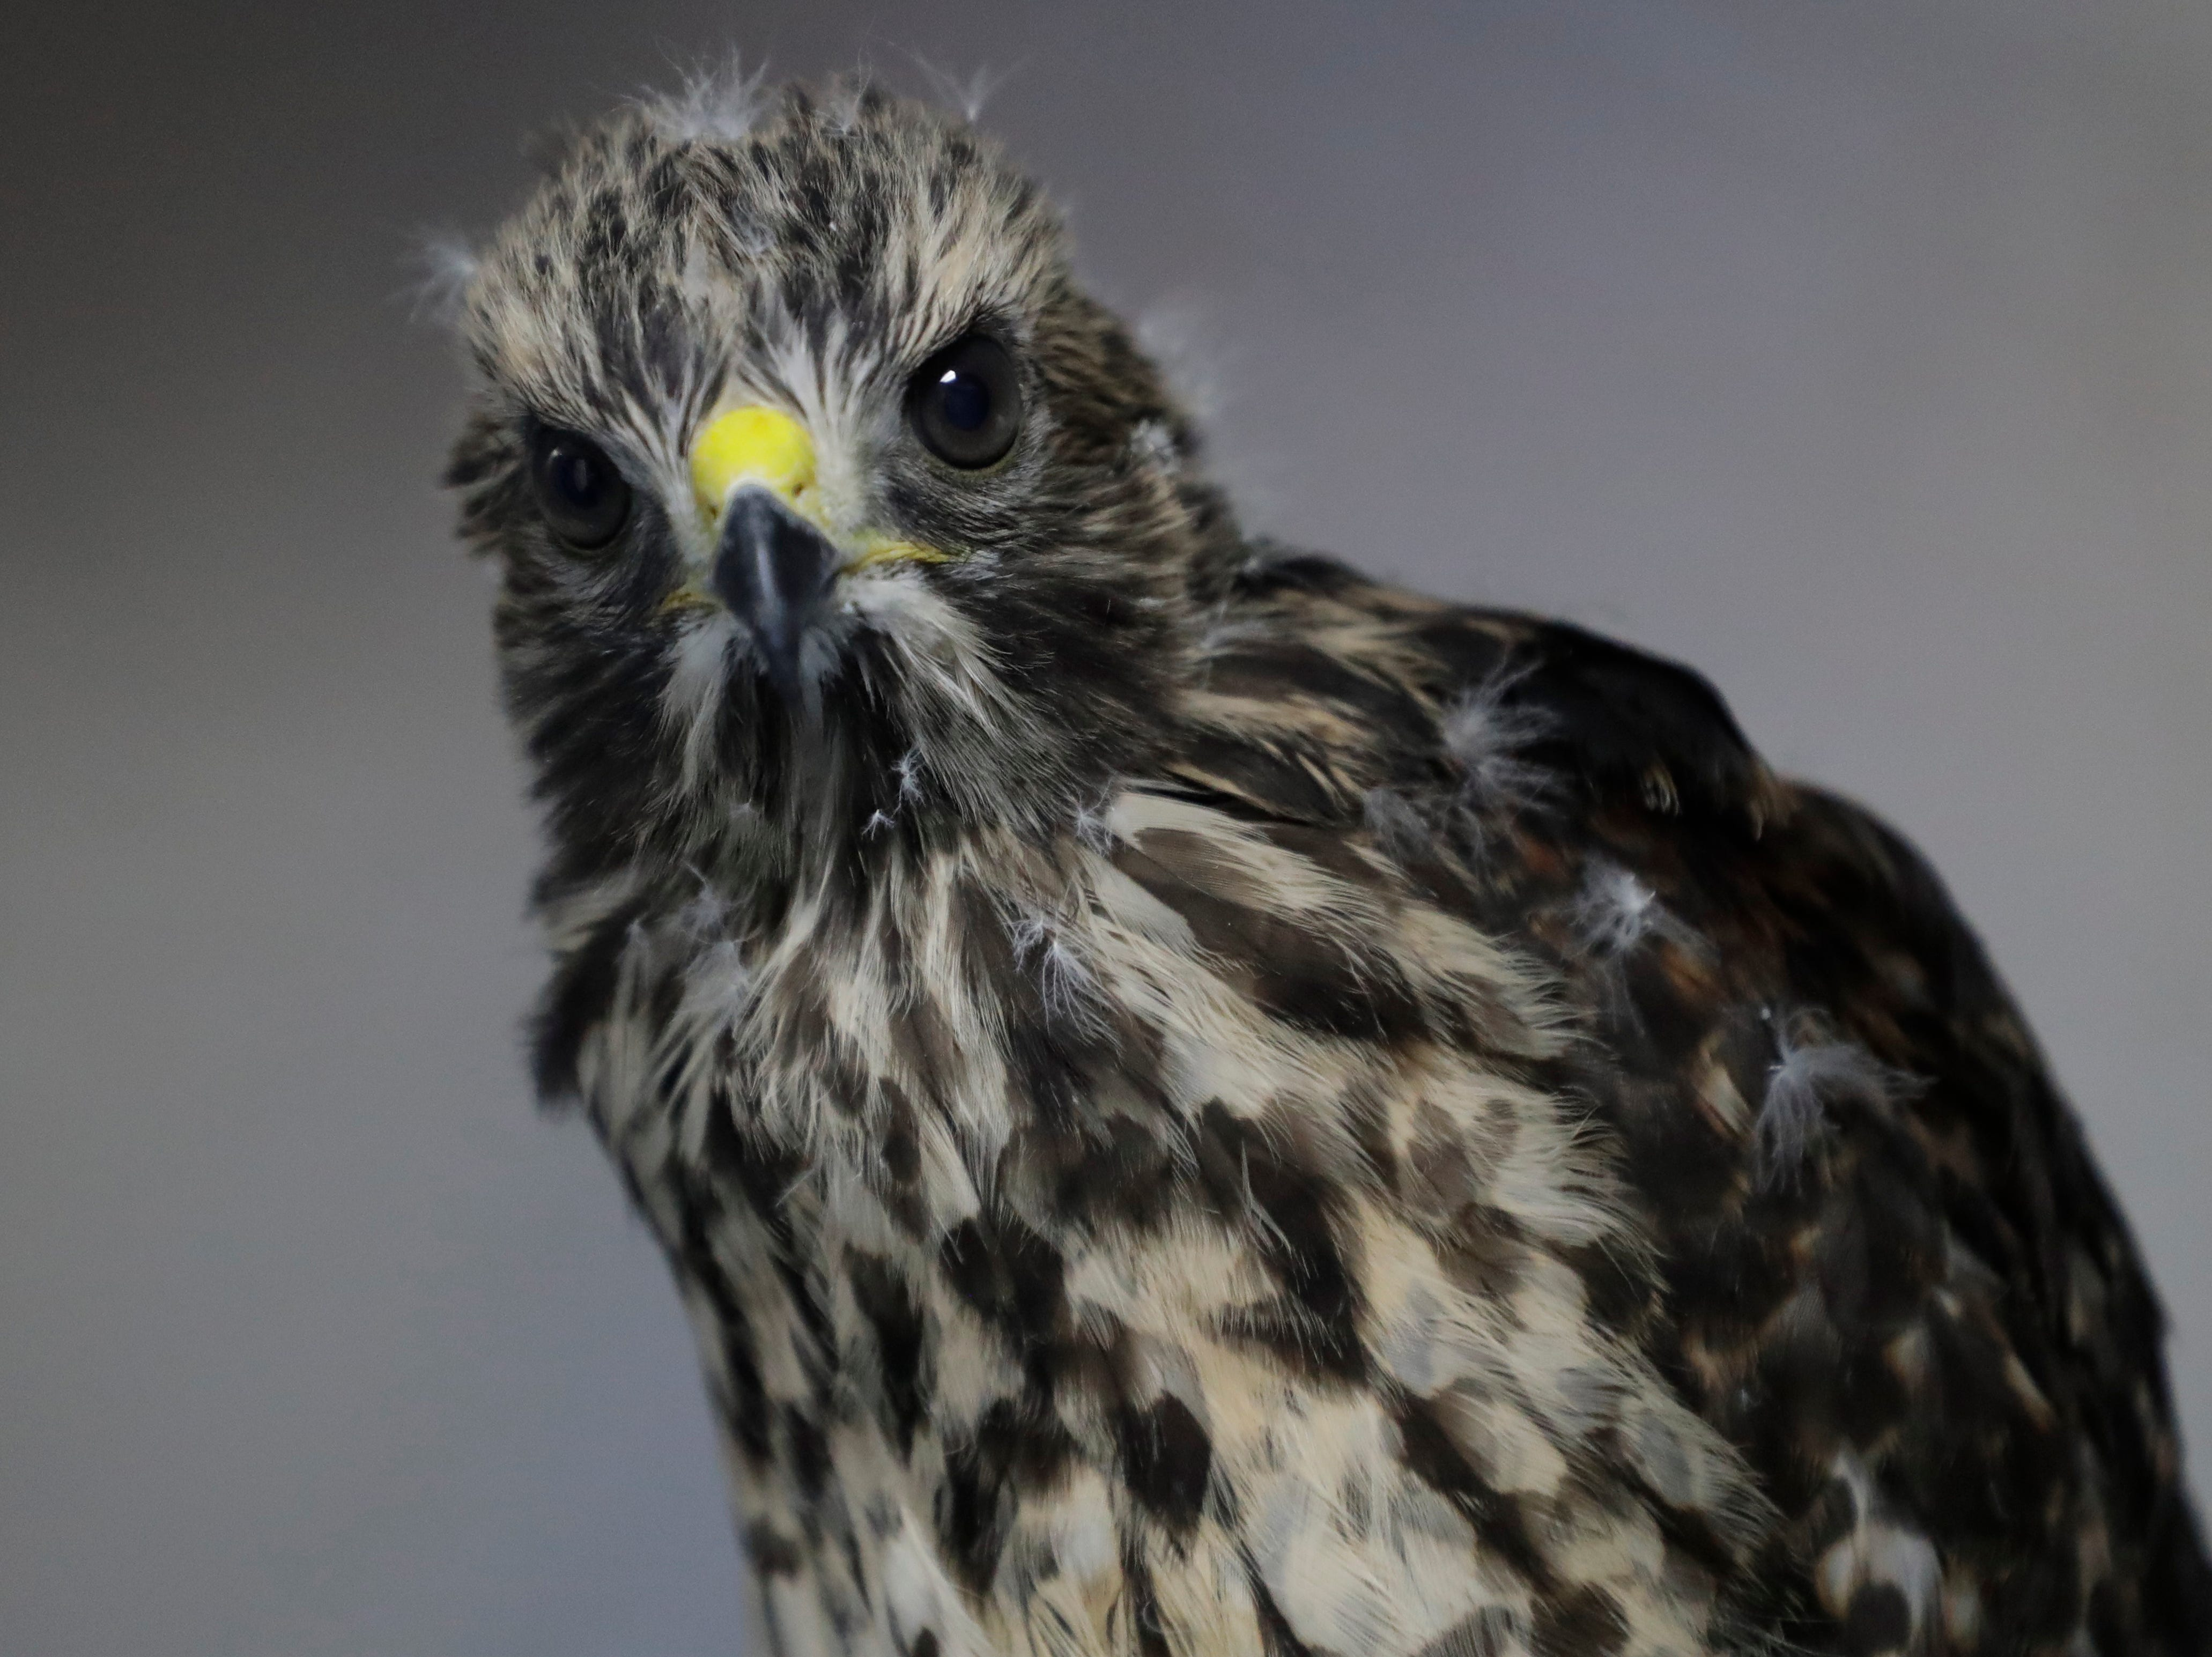 A red shouldered hawk sits in its enclosure at St. Francis Wildlife Hospital Monday, May 13, 2019.